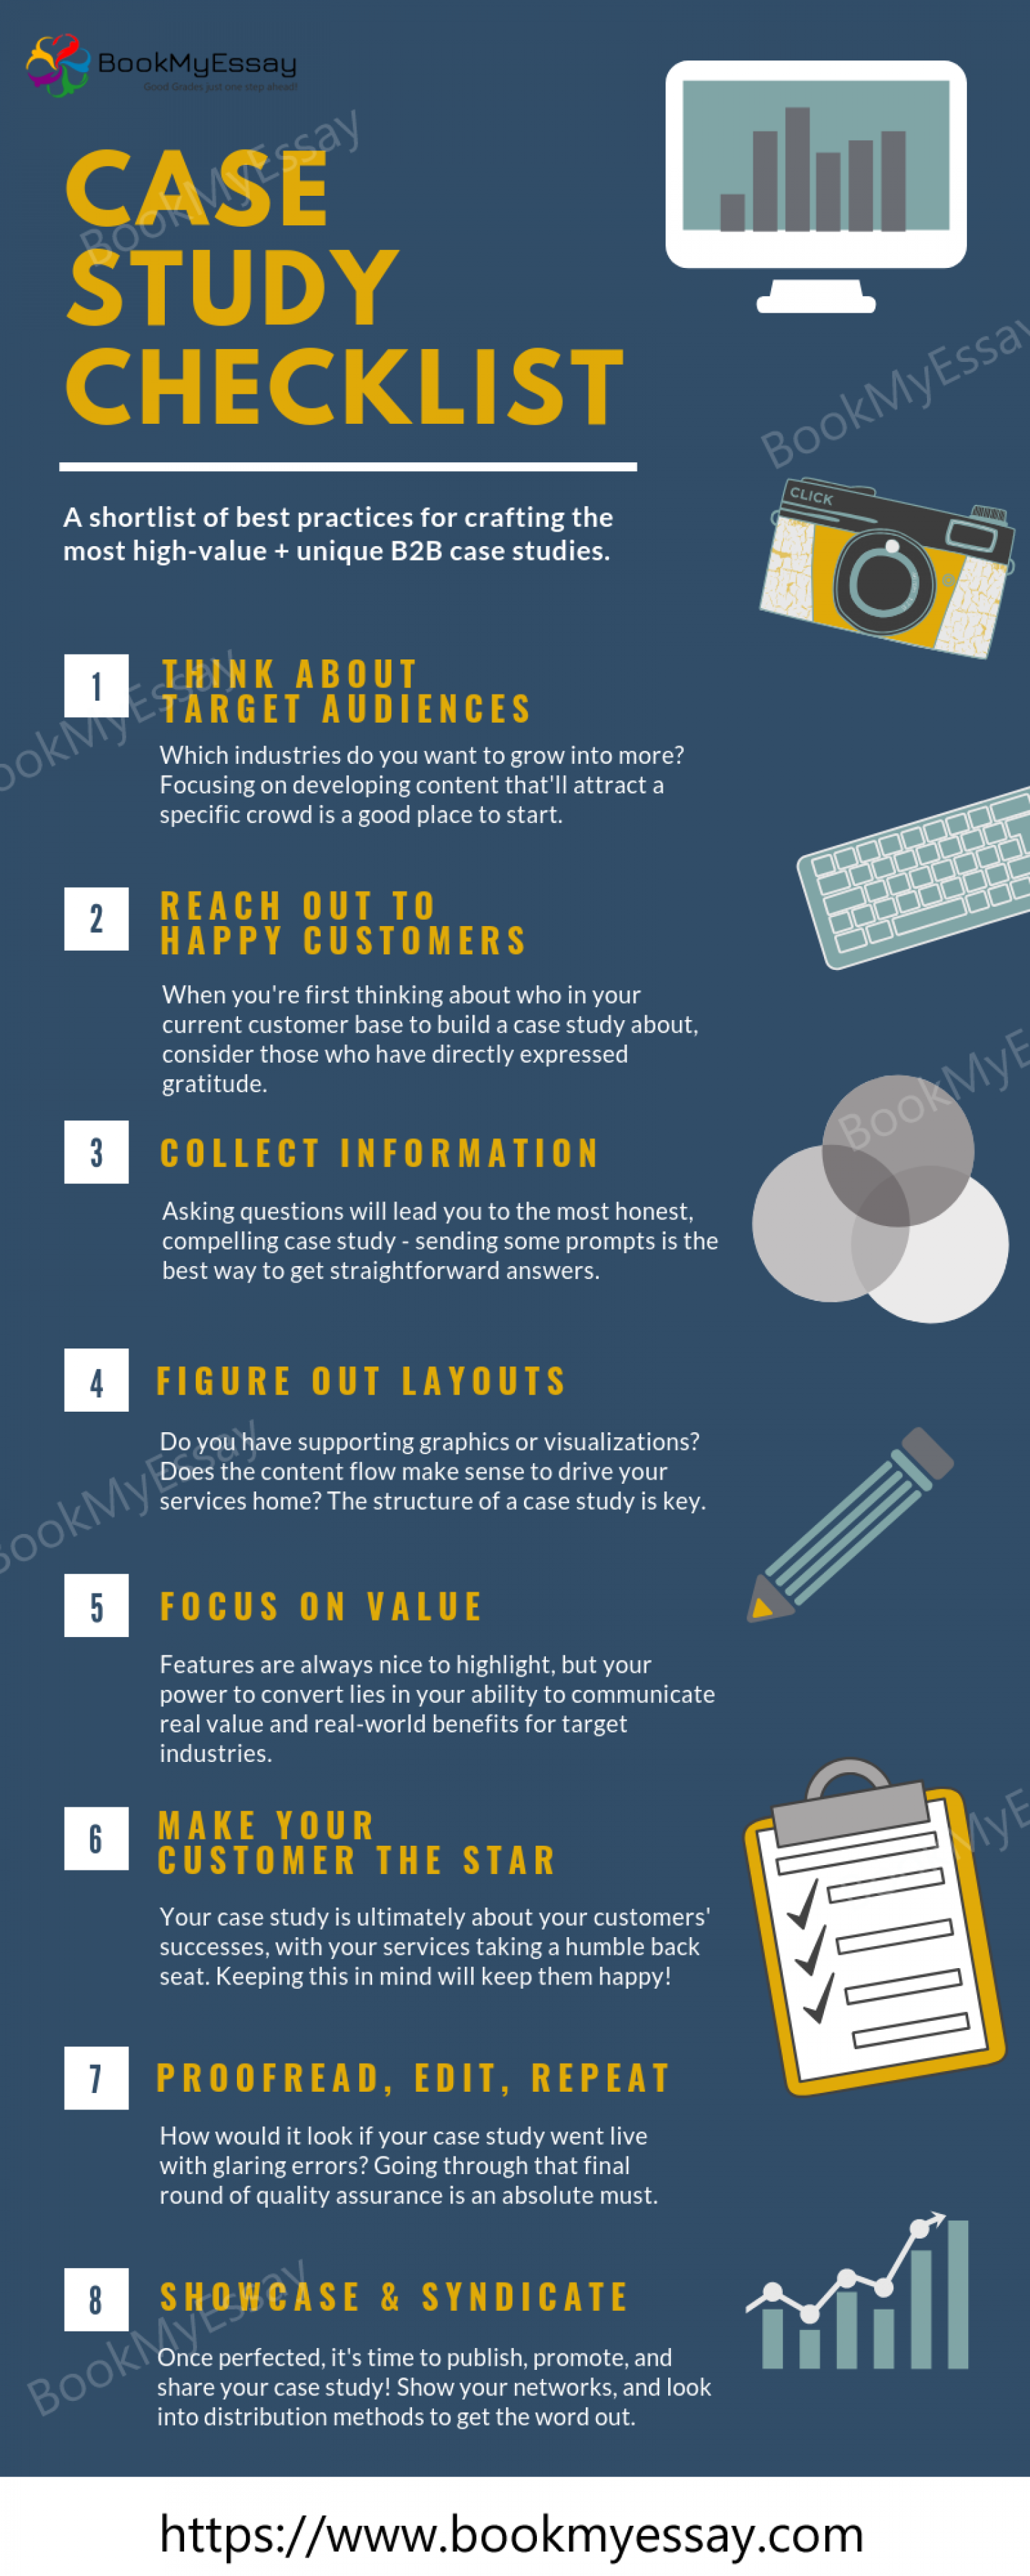 Read Case Study Checklist Infographic